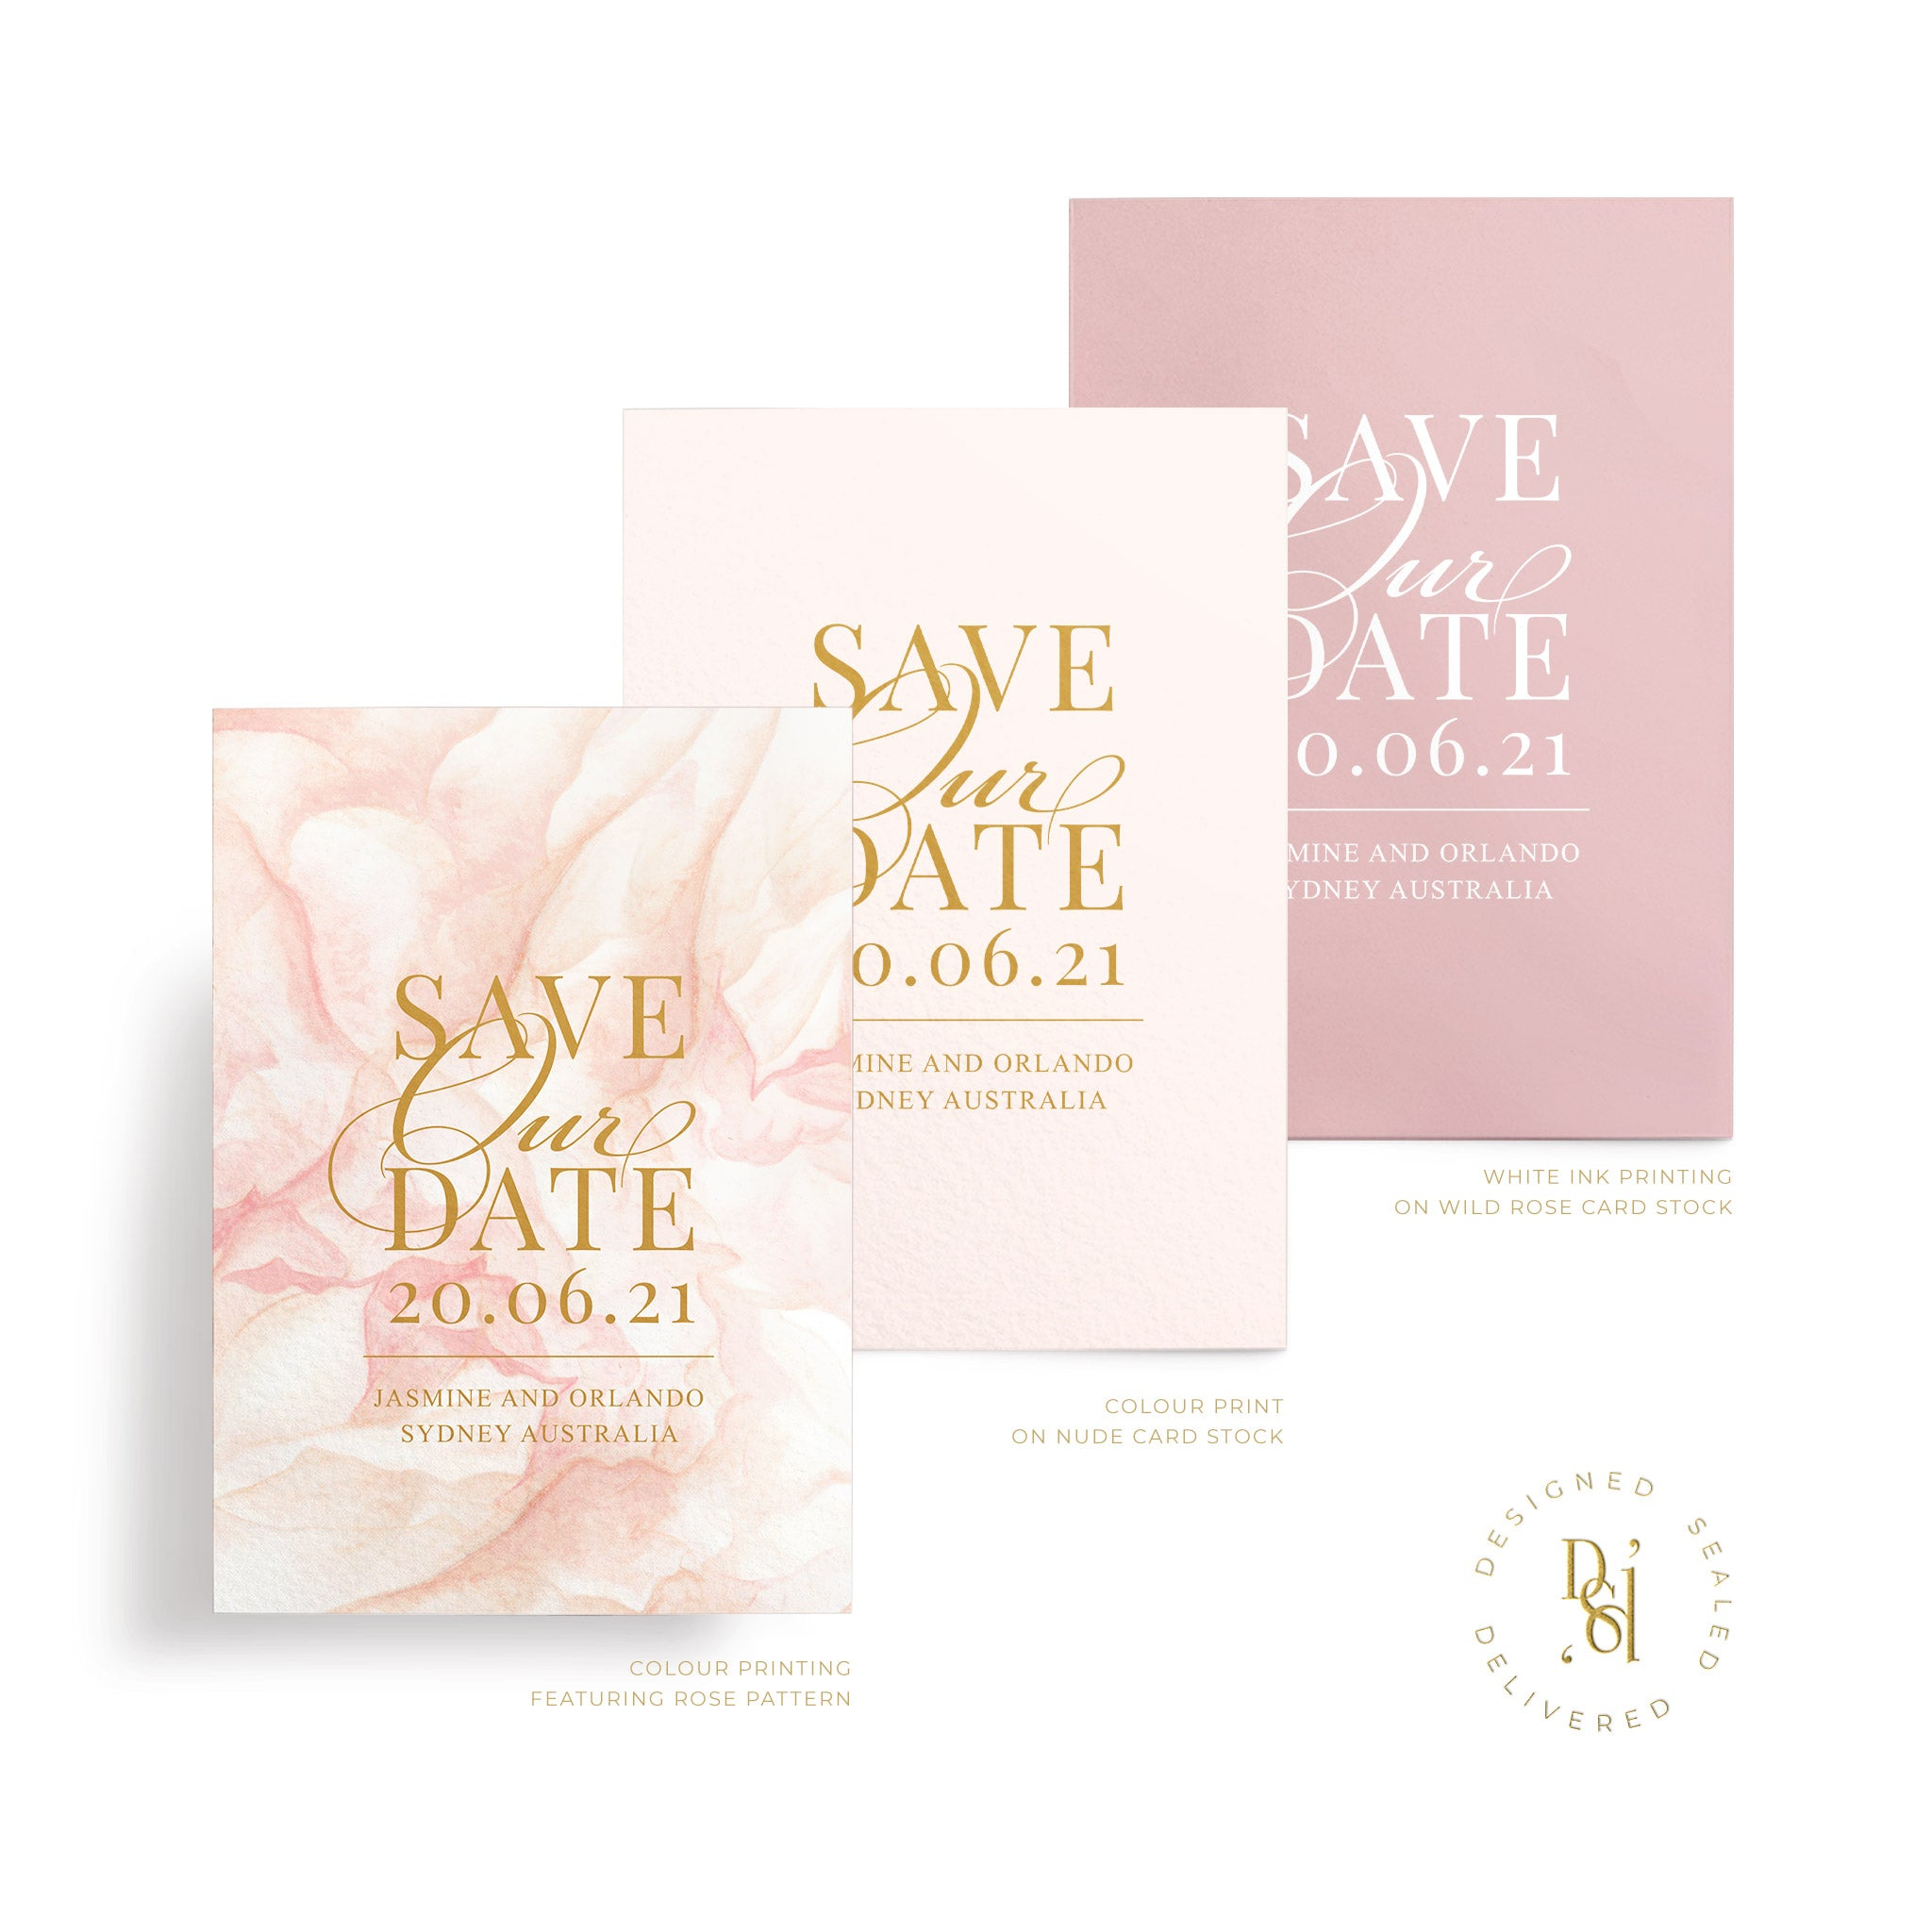 Rosé Collection: Save the Date Cards, variety of print options shown; rosé pattern print, colour print, white ink